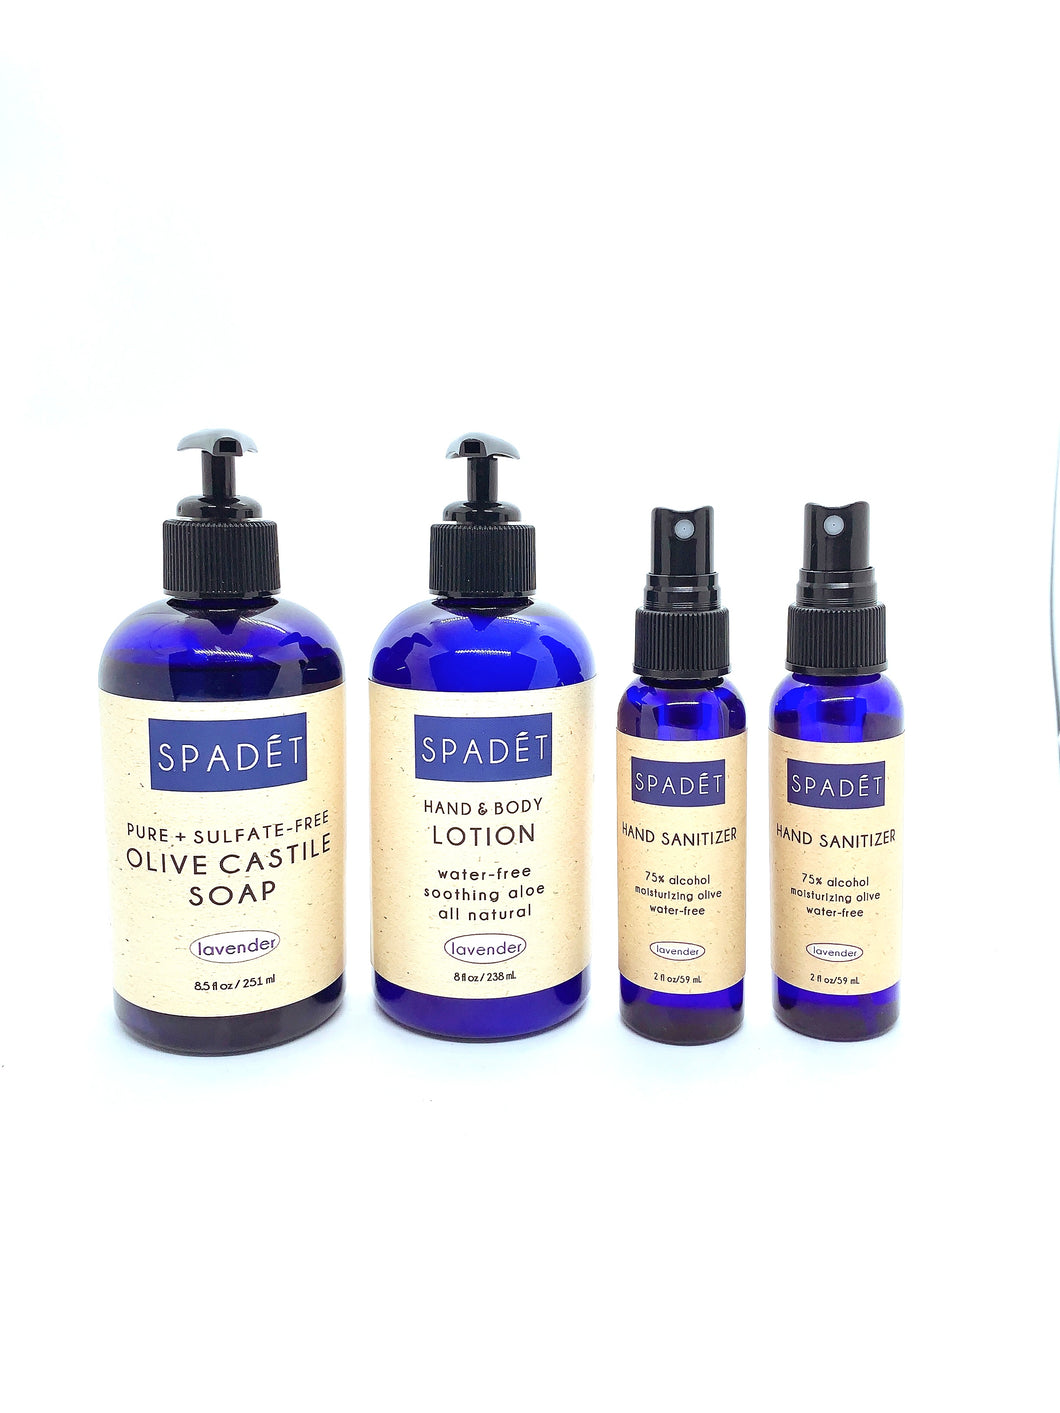 HAND CARE ESSENTIALS HOLIDAY GIFT